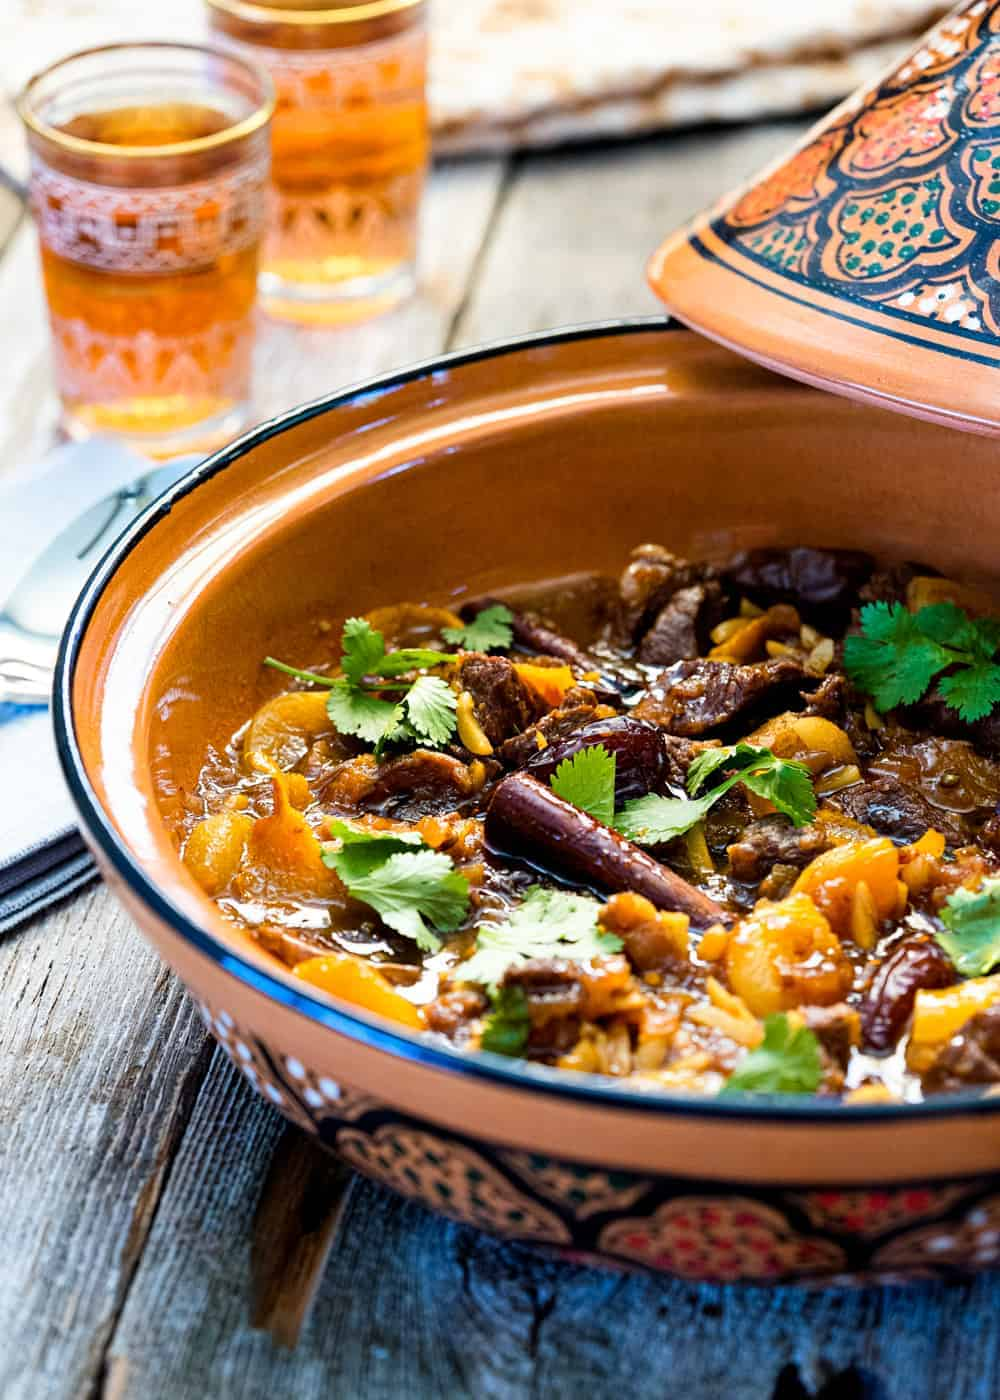 Moroccan lamb dinner with apricots and dates in large clay pot